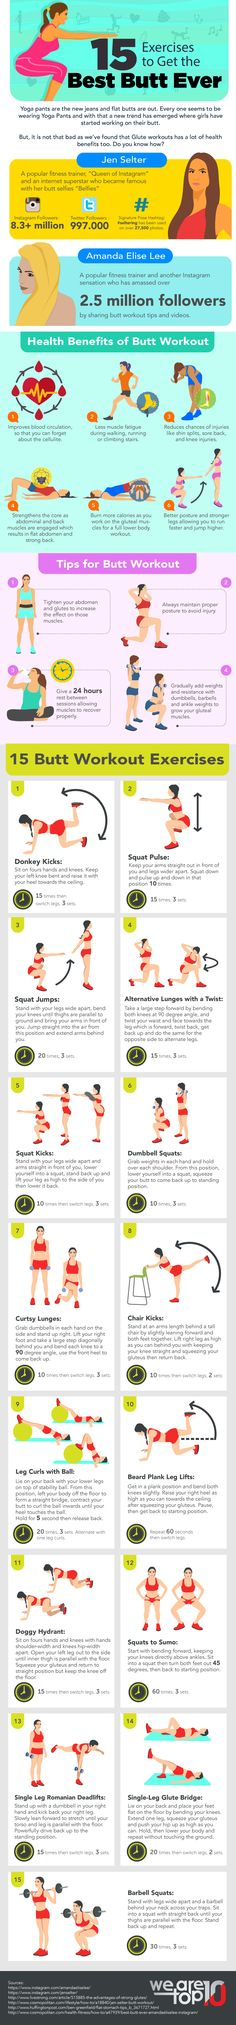 15 Exercises To Get Best Butt Ever